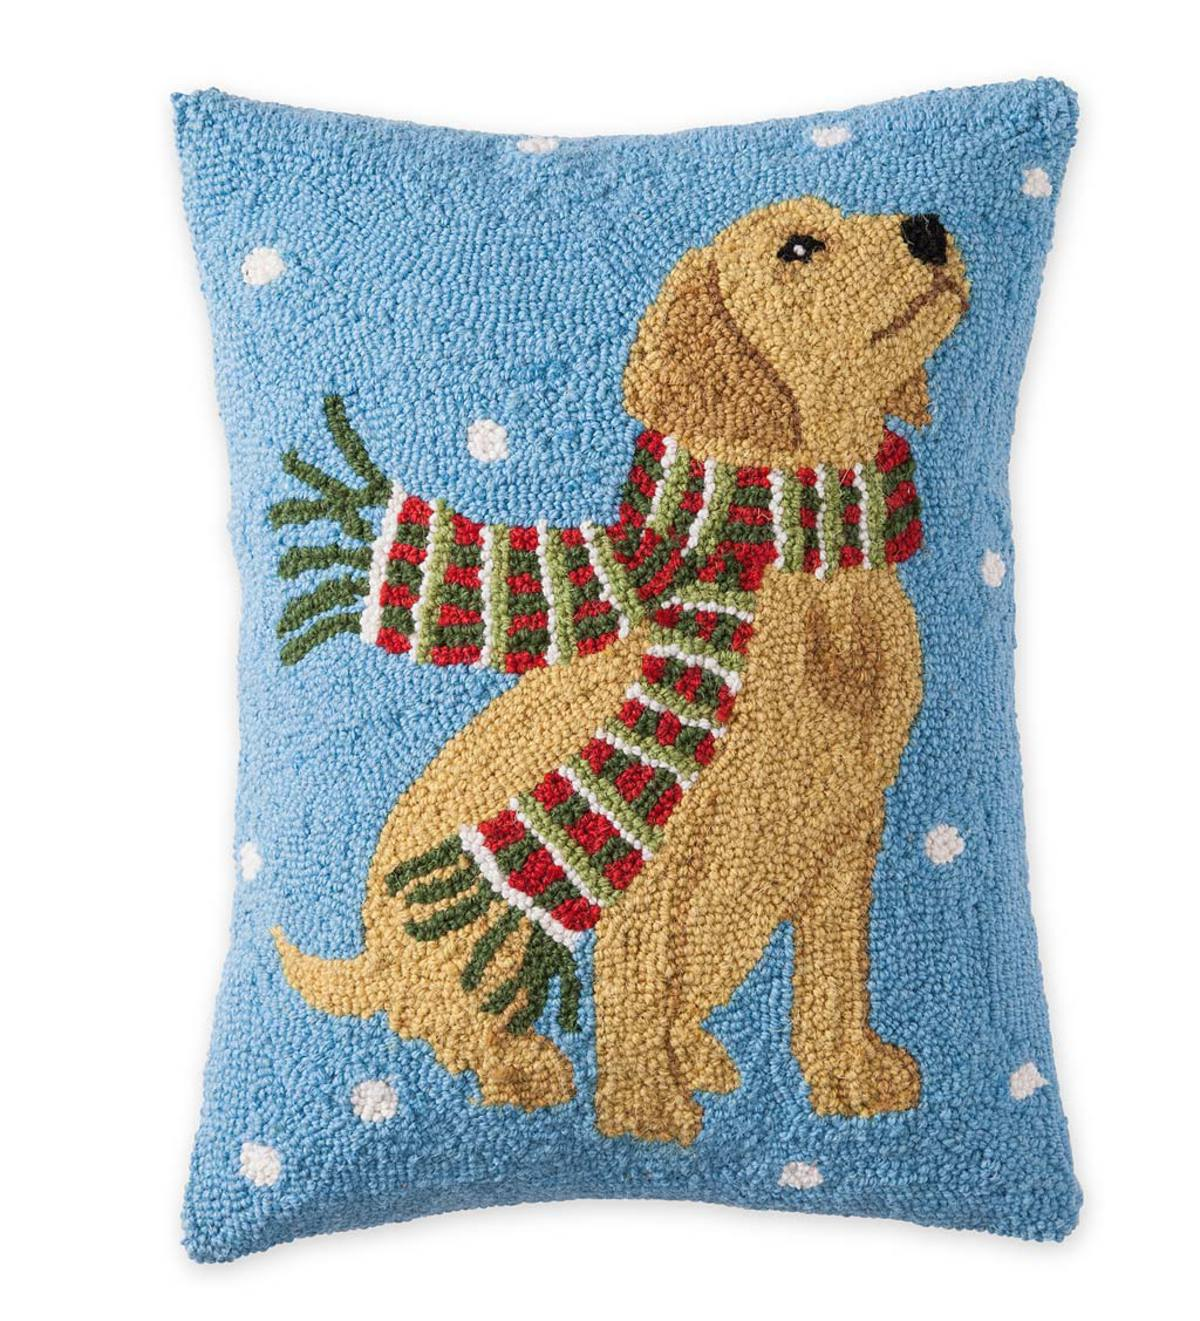 Hooked Wool Holiday Throw Pillow with Yellow Lab and Snowflakes